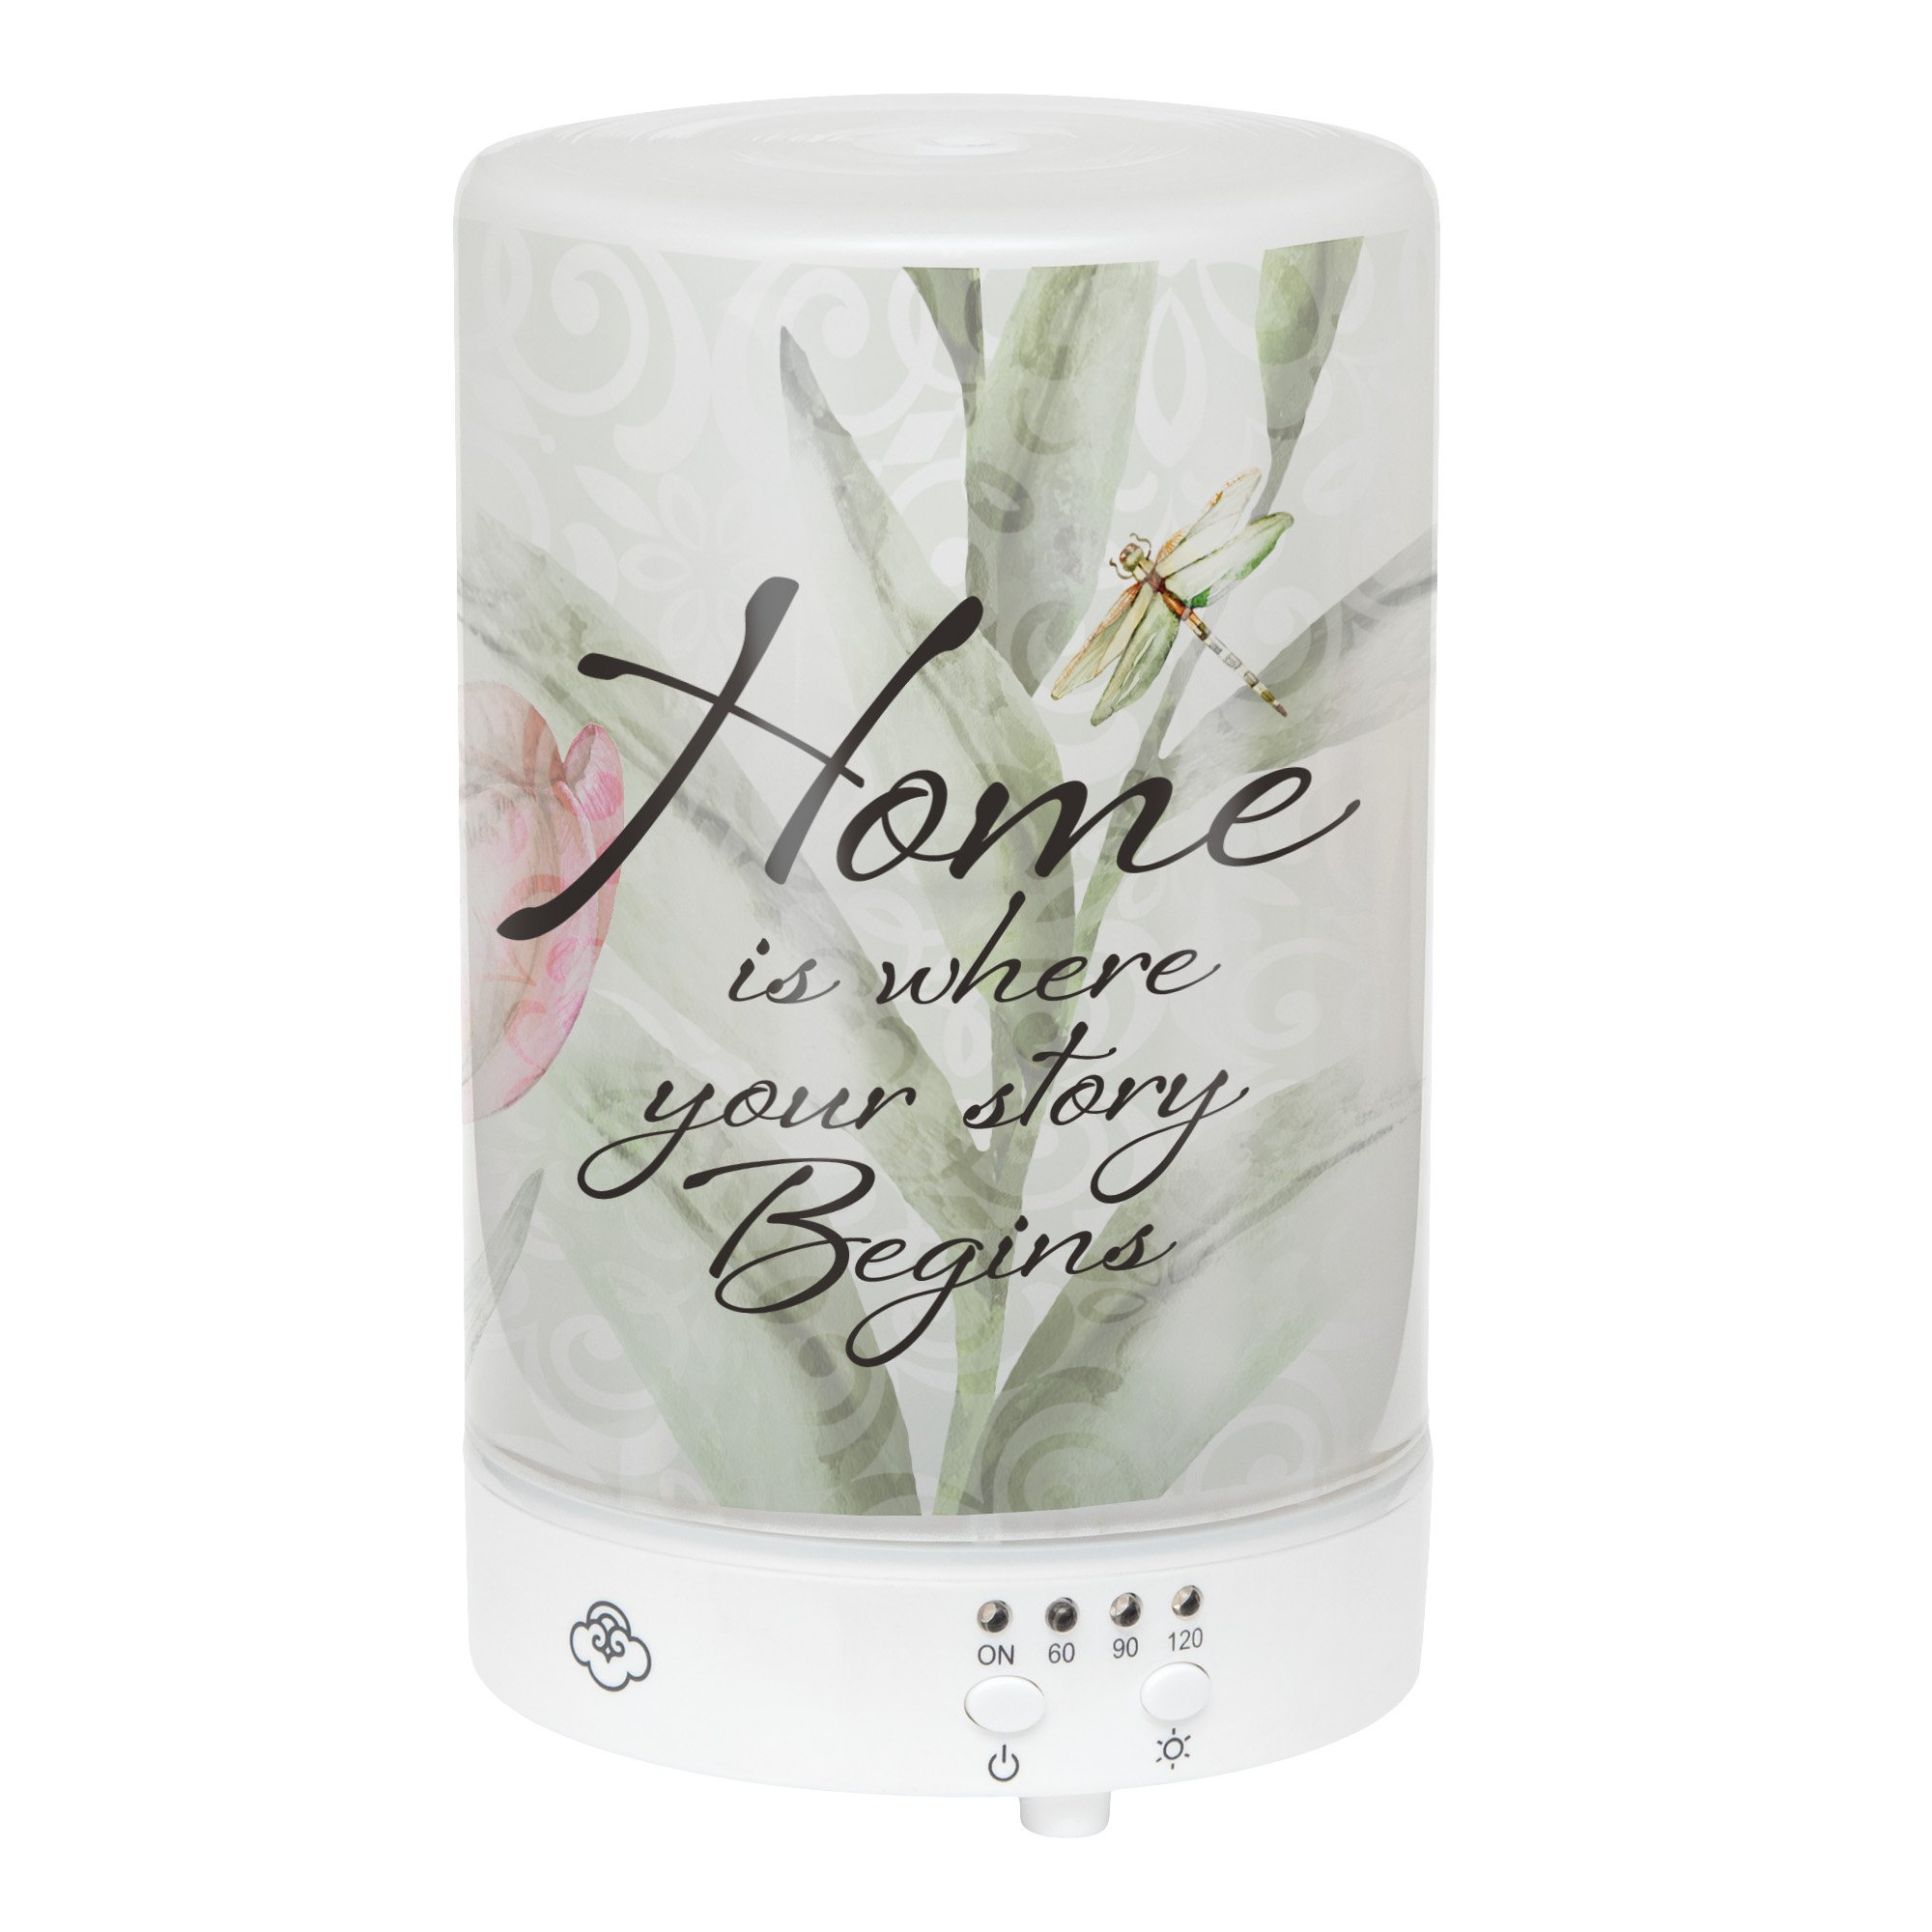 Elanze Designs Home Where Story Begins Dragonfly Floral Frosted Glass 8 Color LED Light Essential Oil Diffuser by Elanze Designs